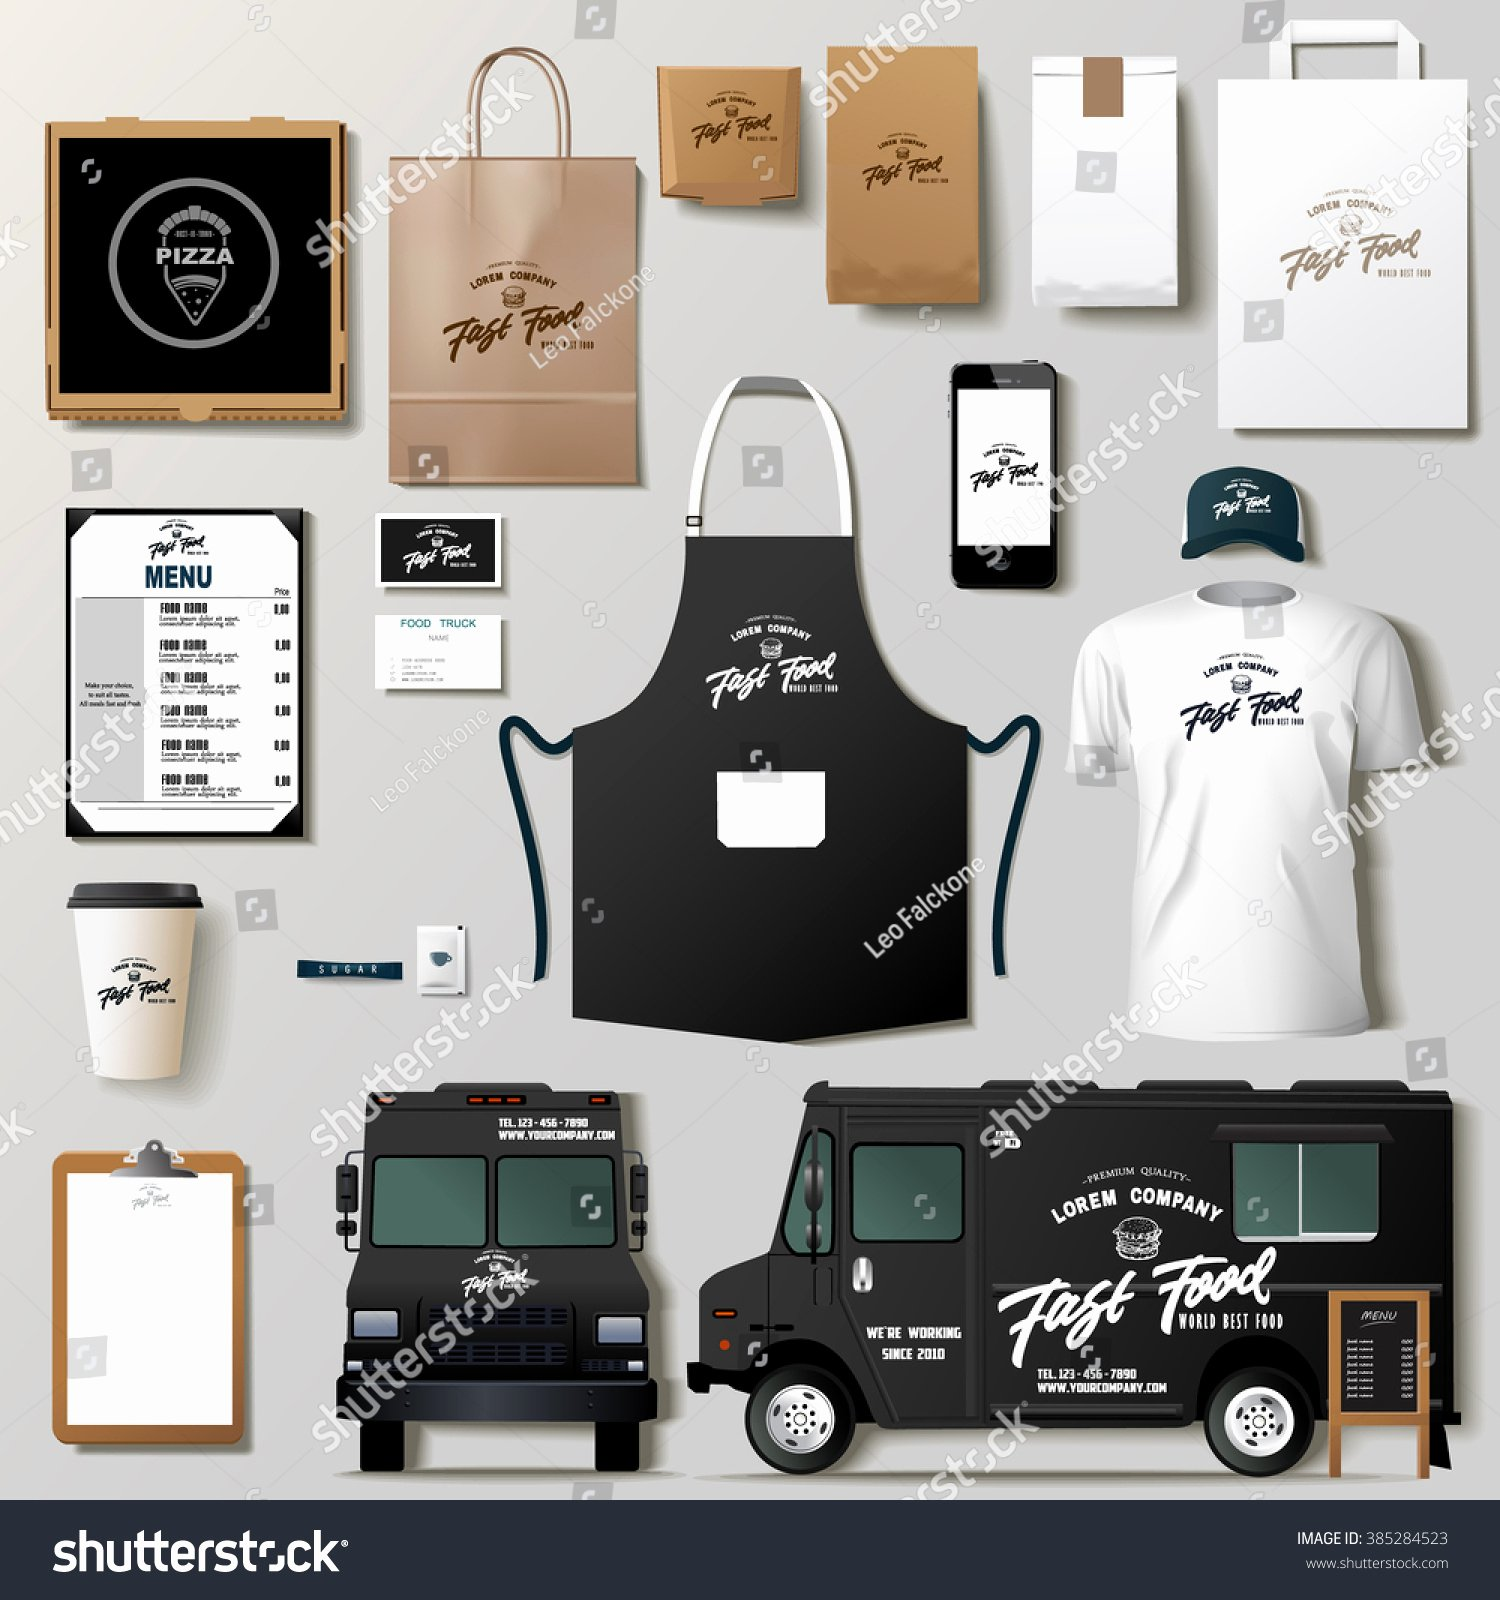 Food Truck Design Template Luxury Blank Food Truck Logo Templates to Pin On